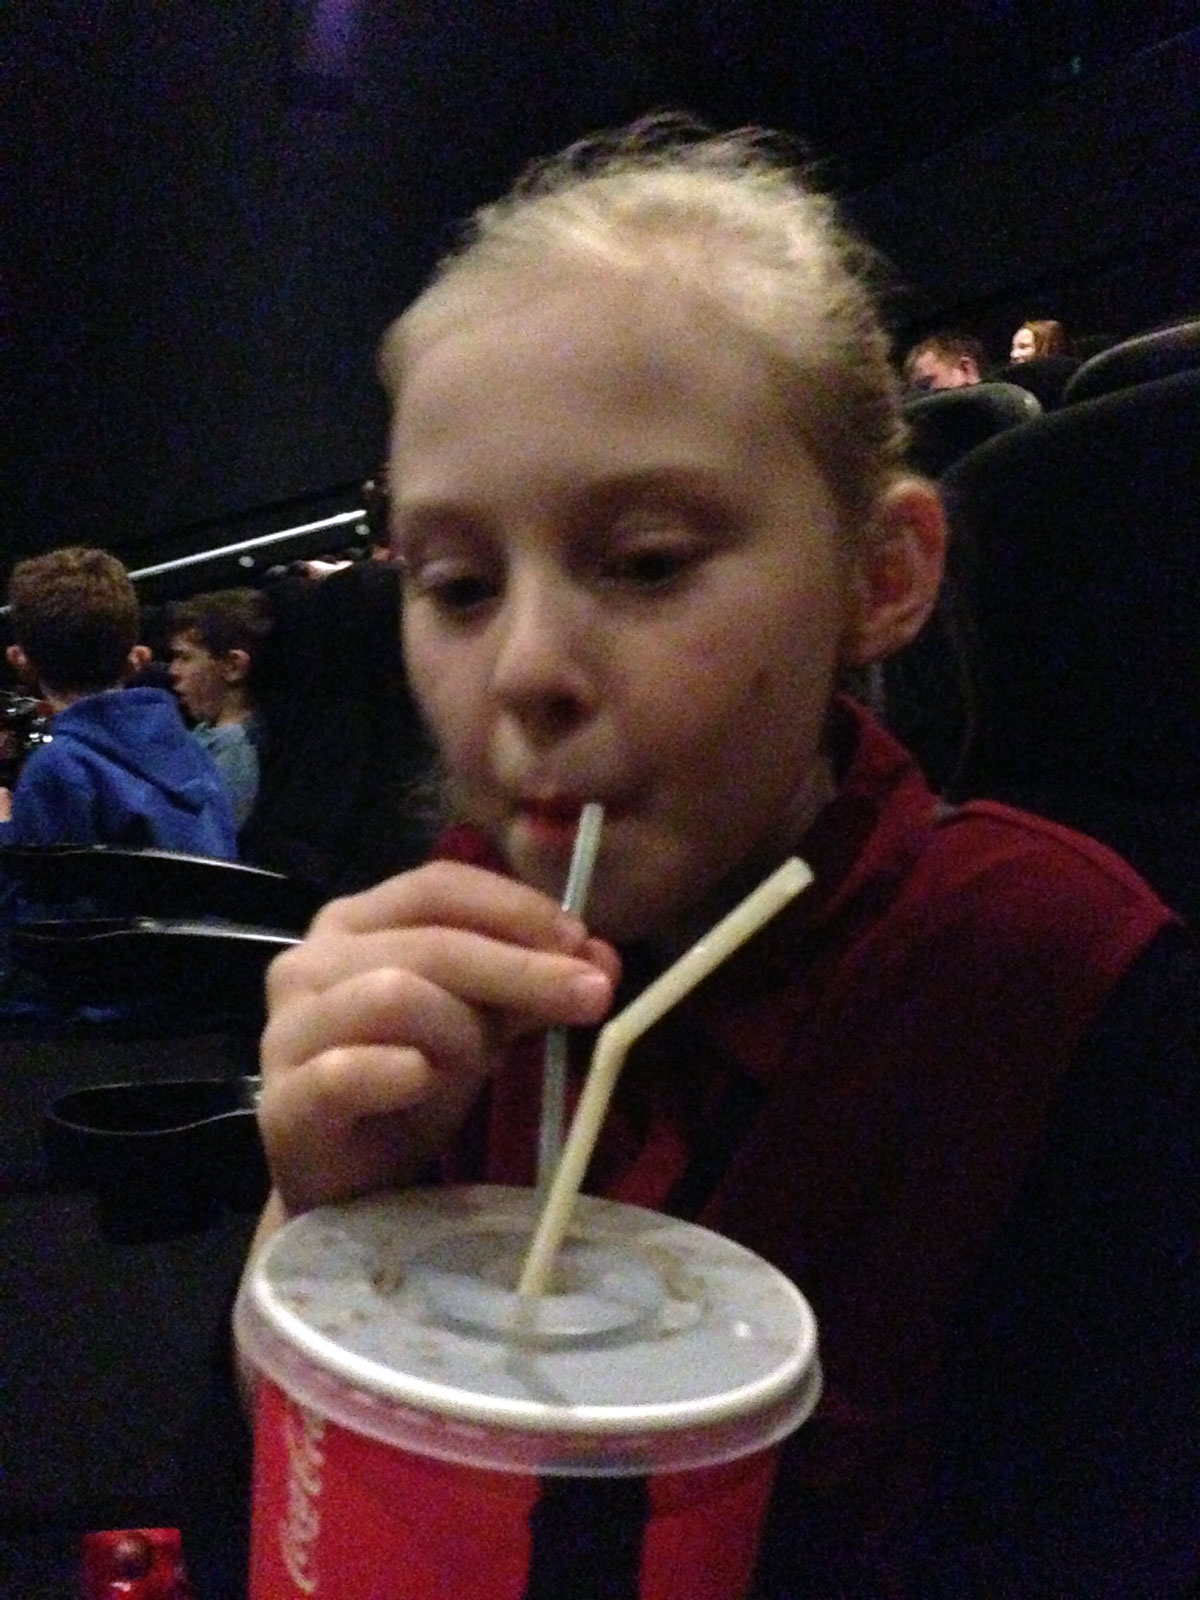 Goosebumps movie too scary for kids